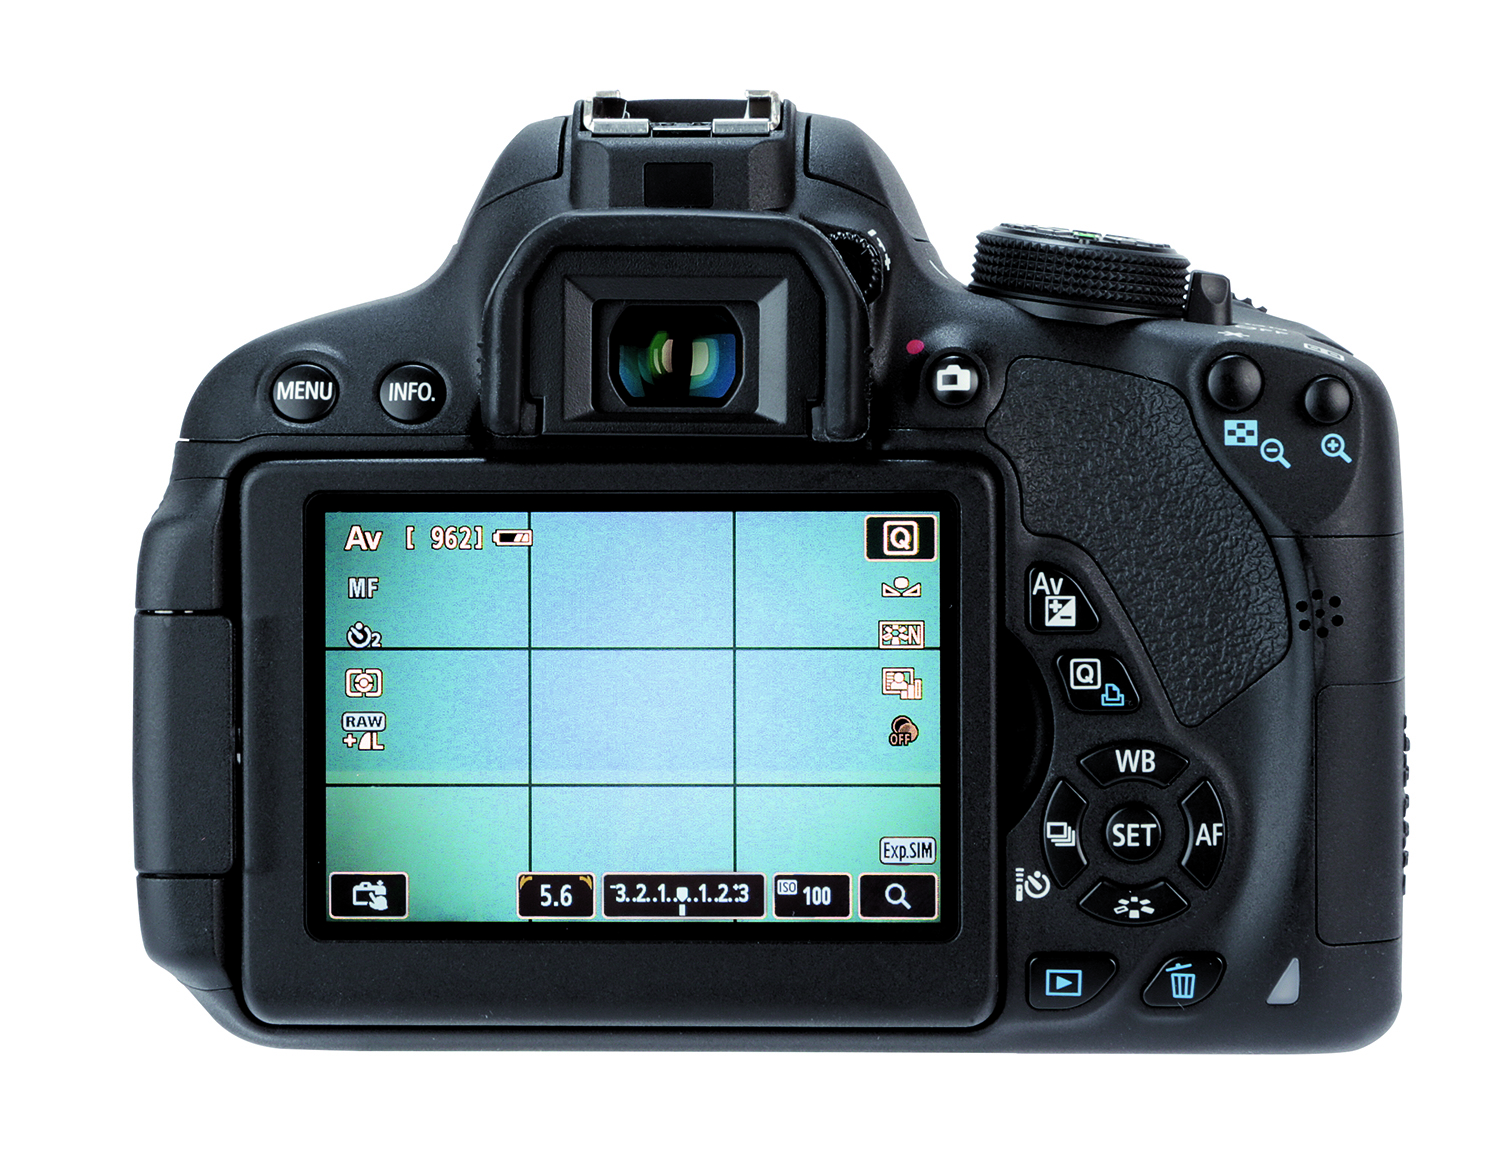 Canon 7d review uk dating 5